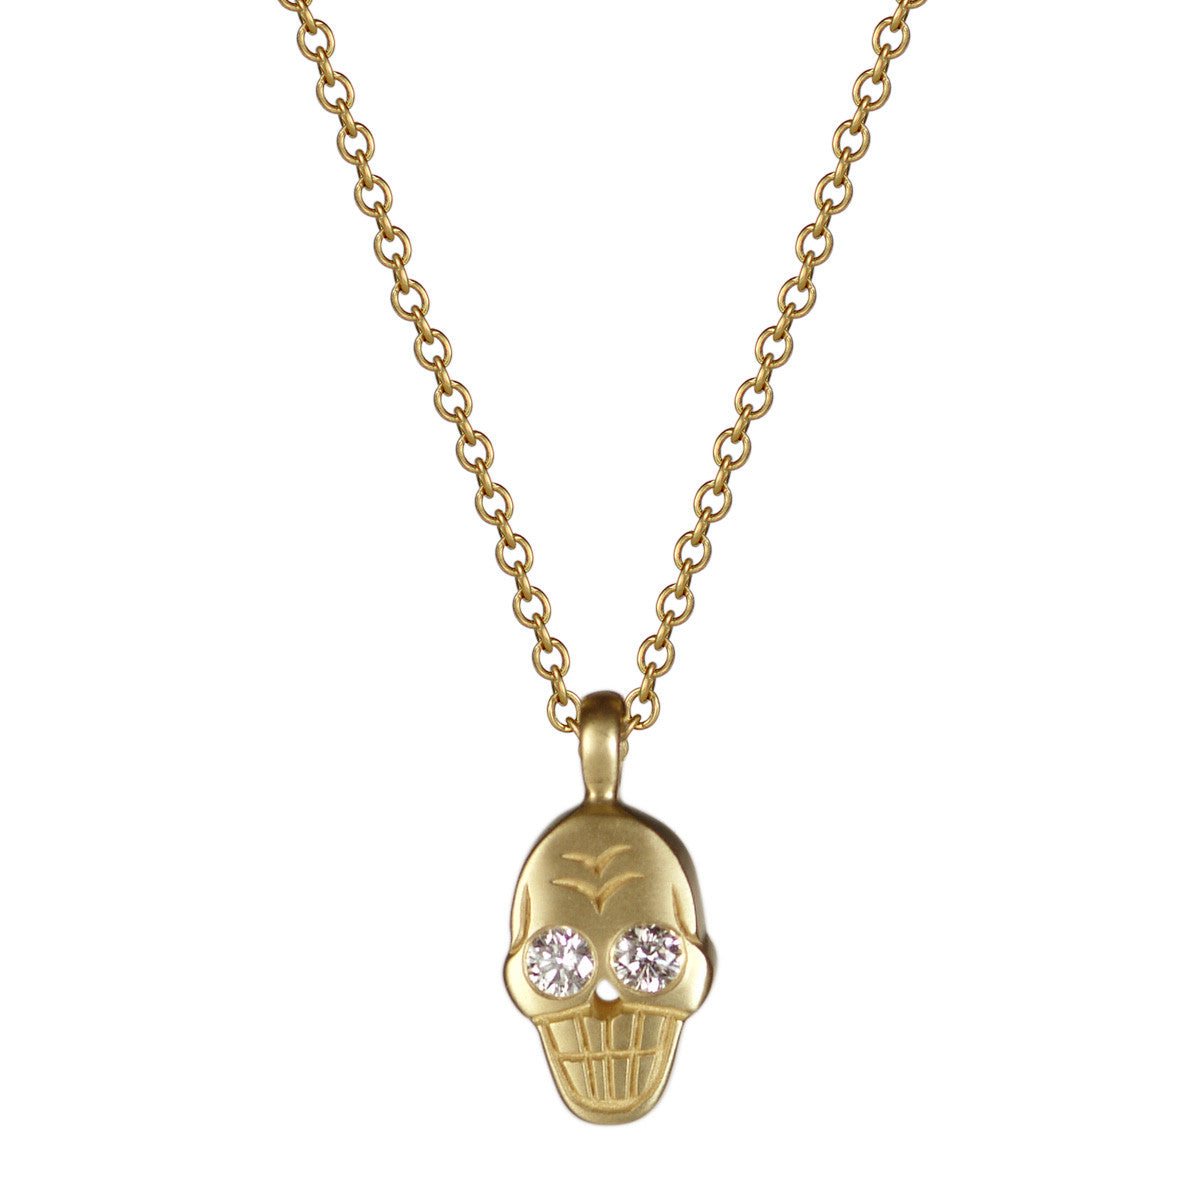 18K Gold Skull Pendant with Diamonds